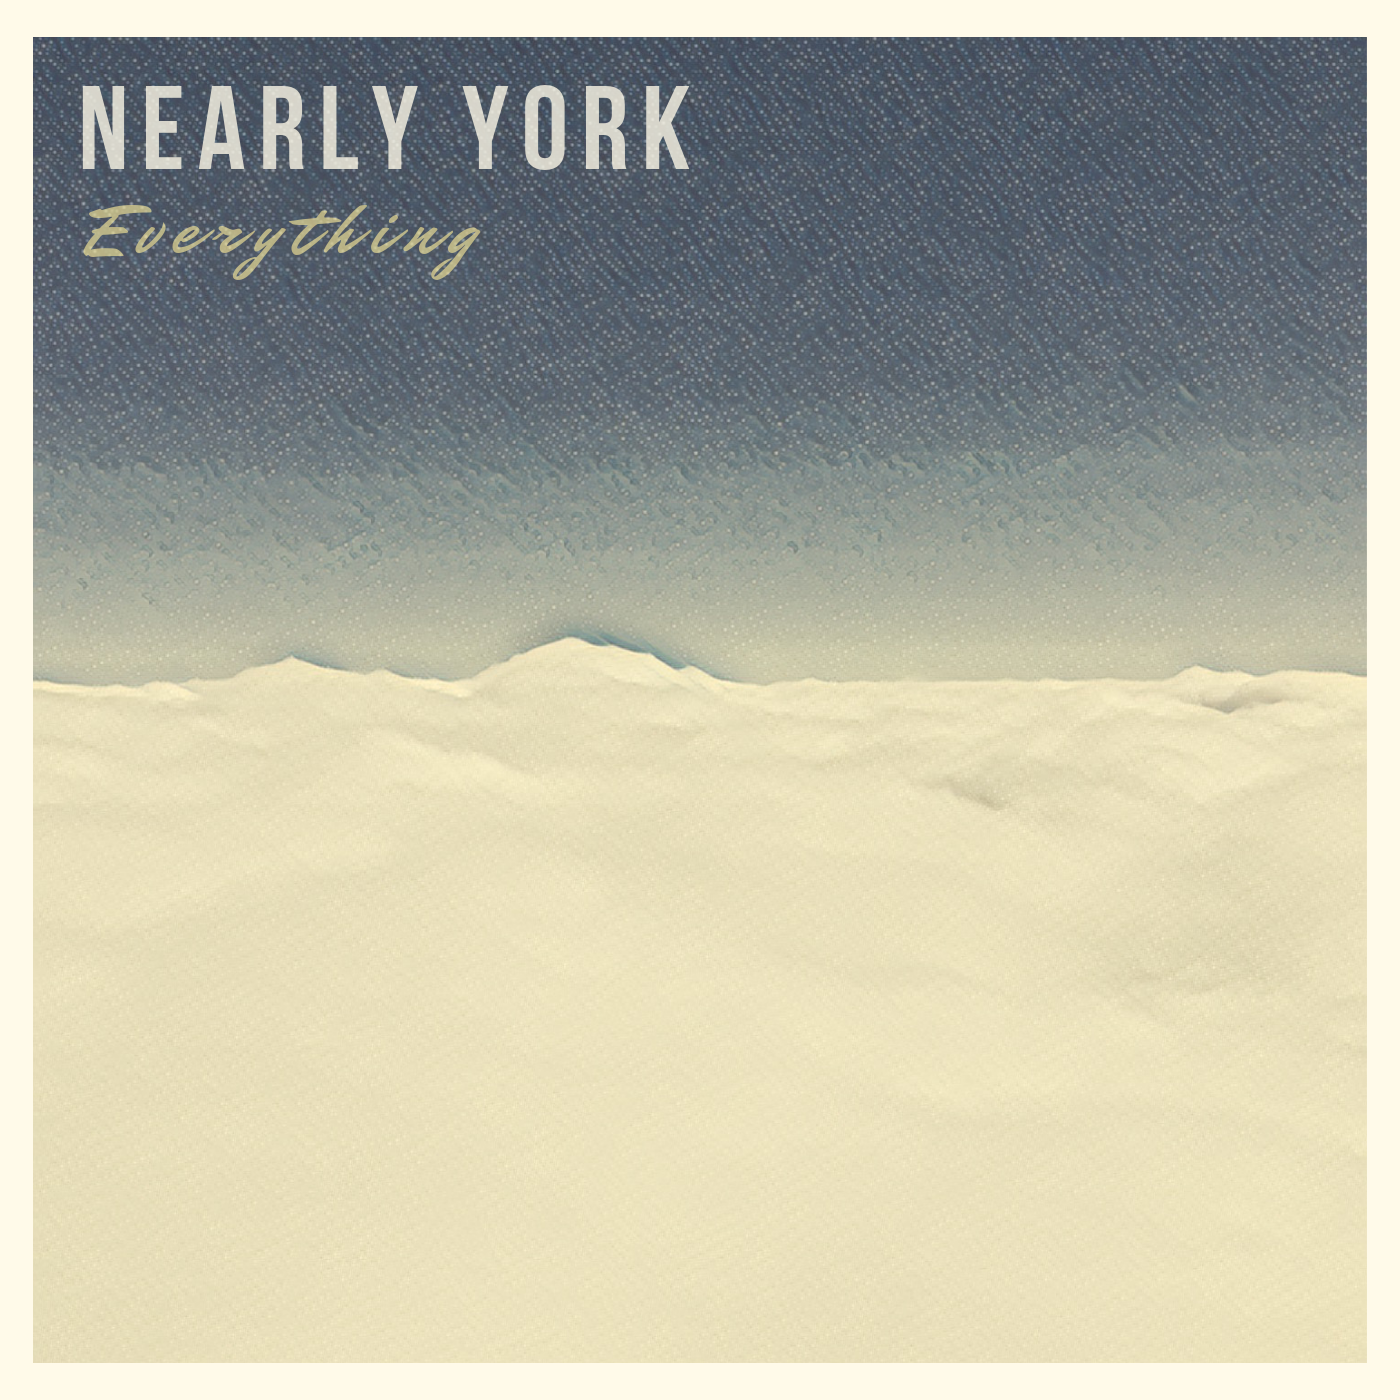 Copy of NEARLY YORK.png